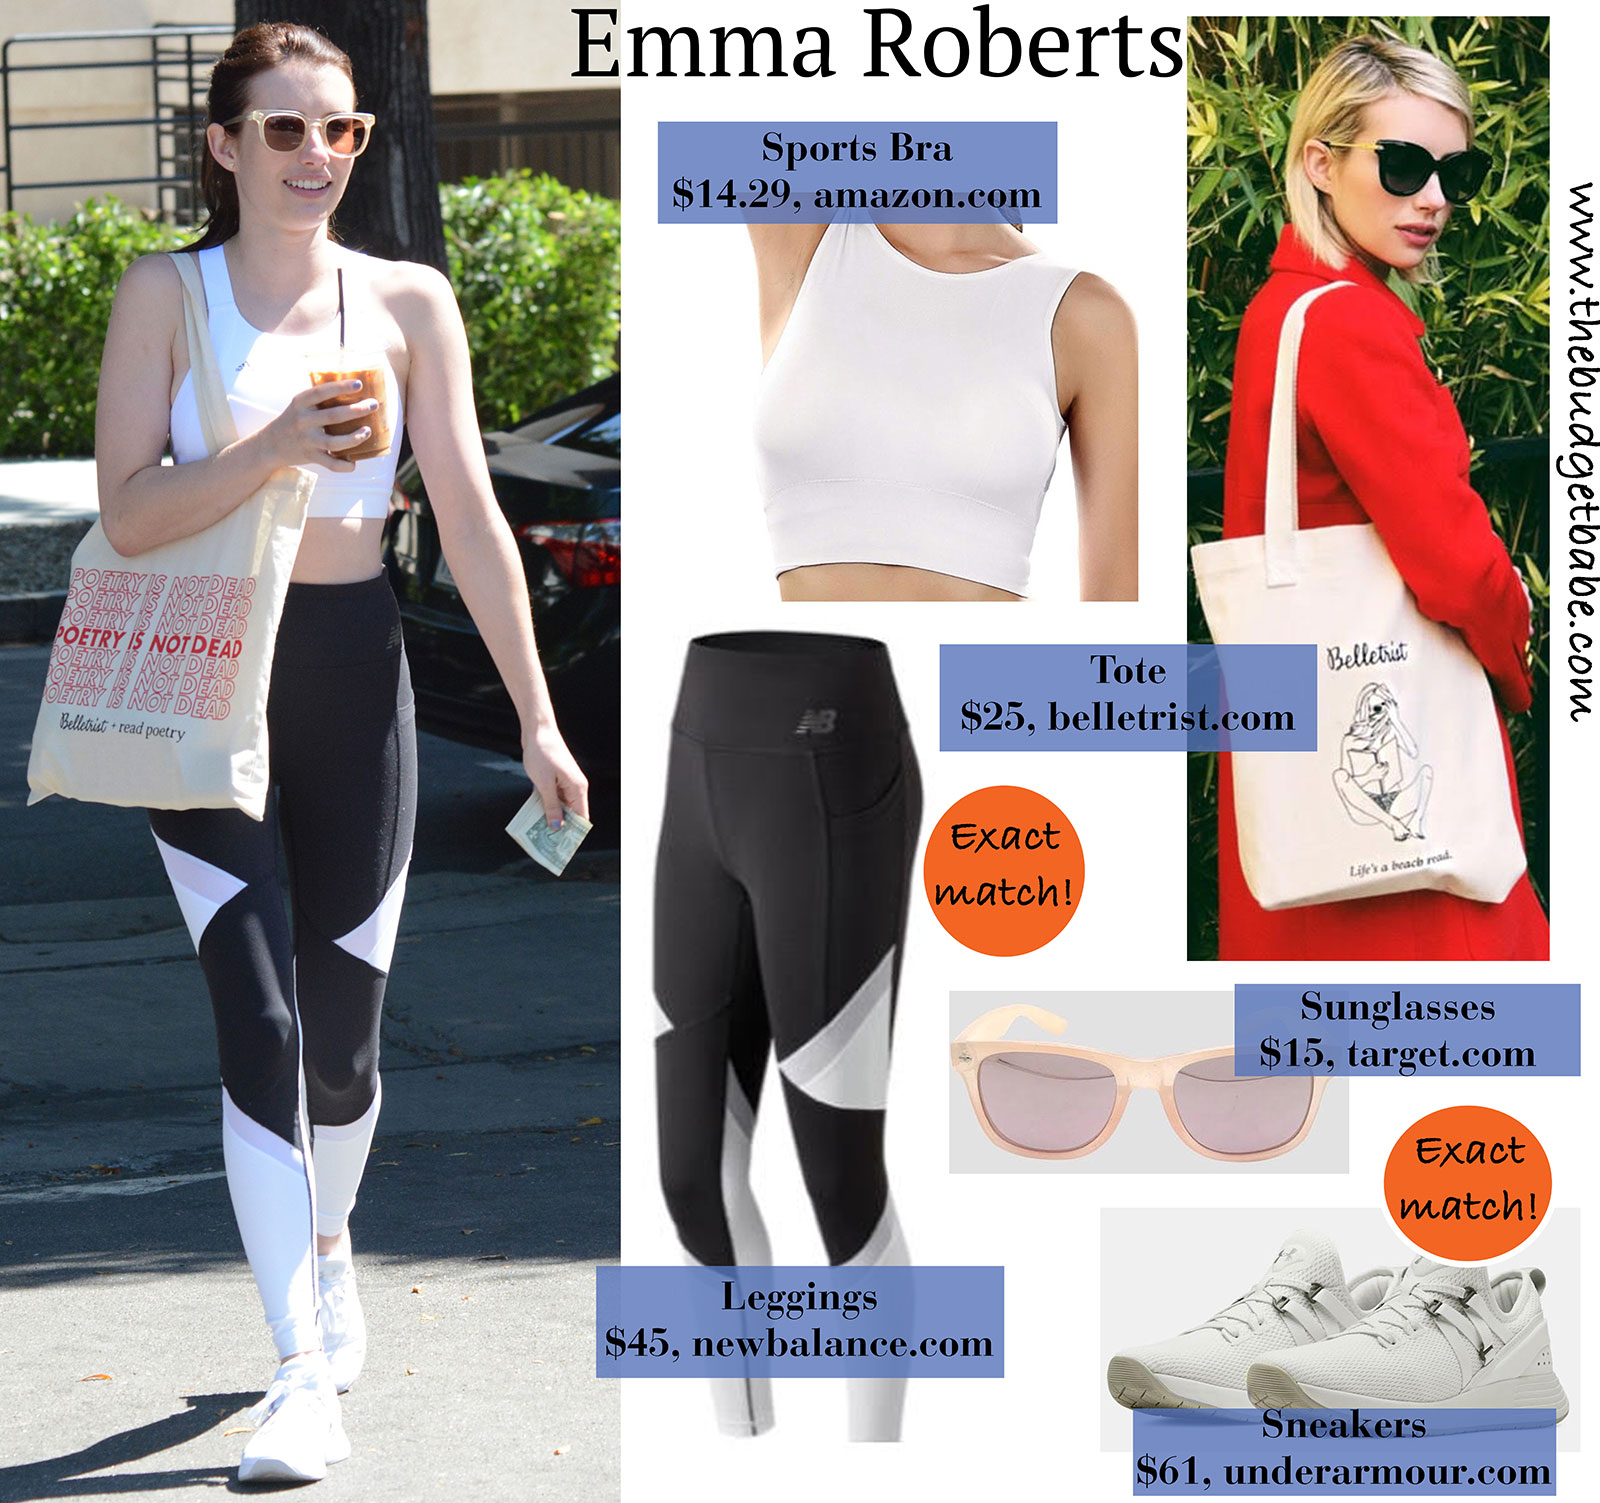 Emma Roberts workout style is the cutest